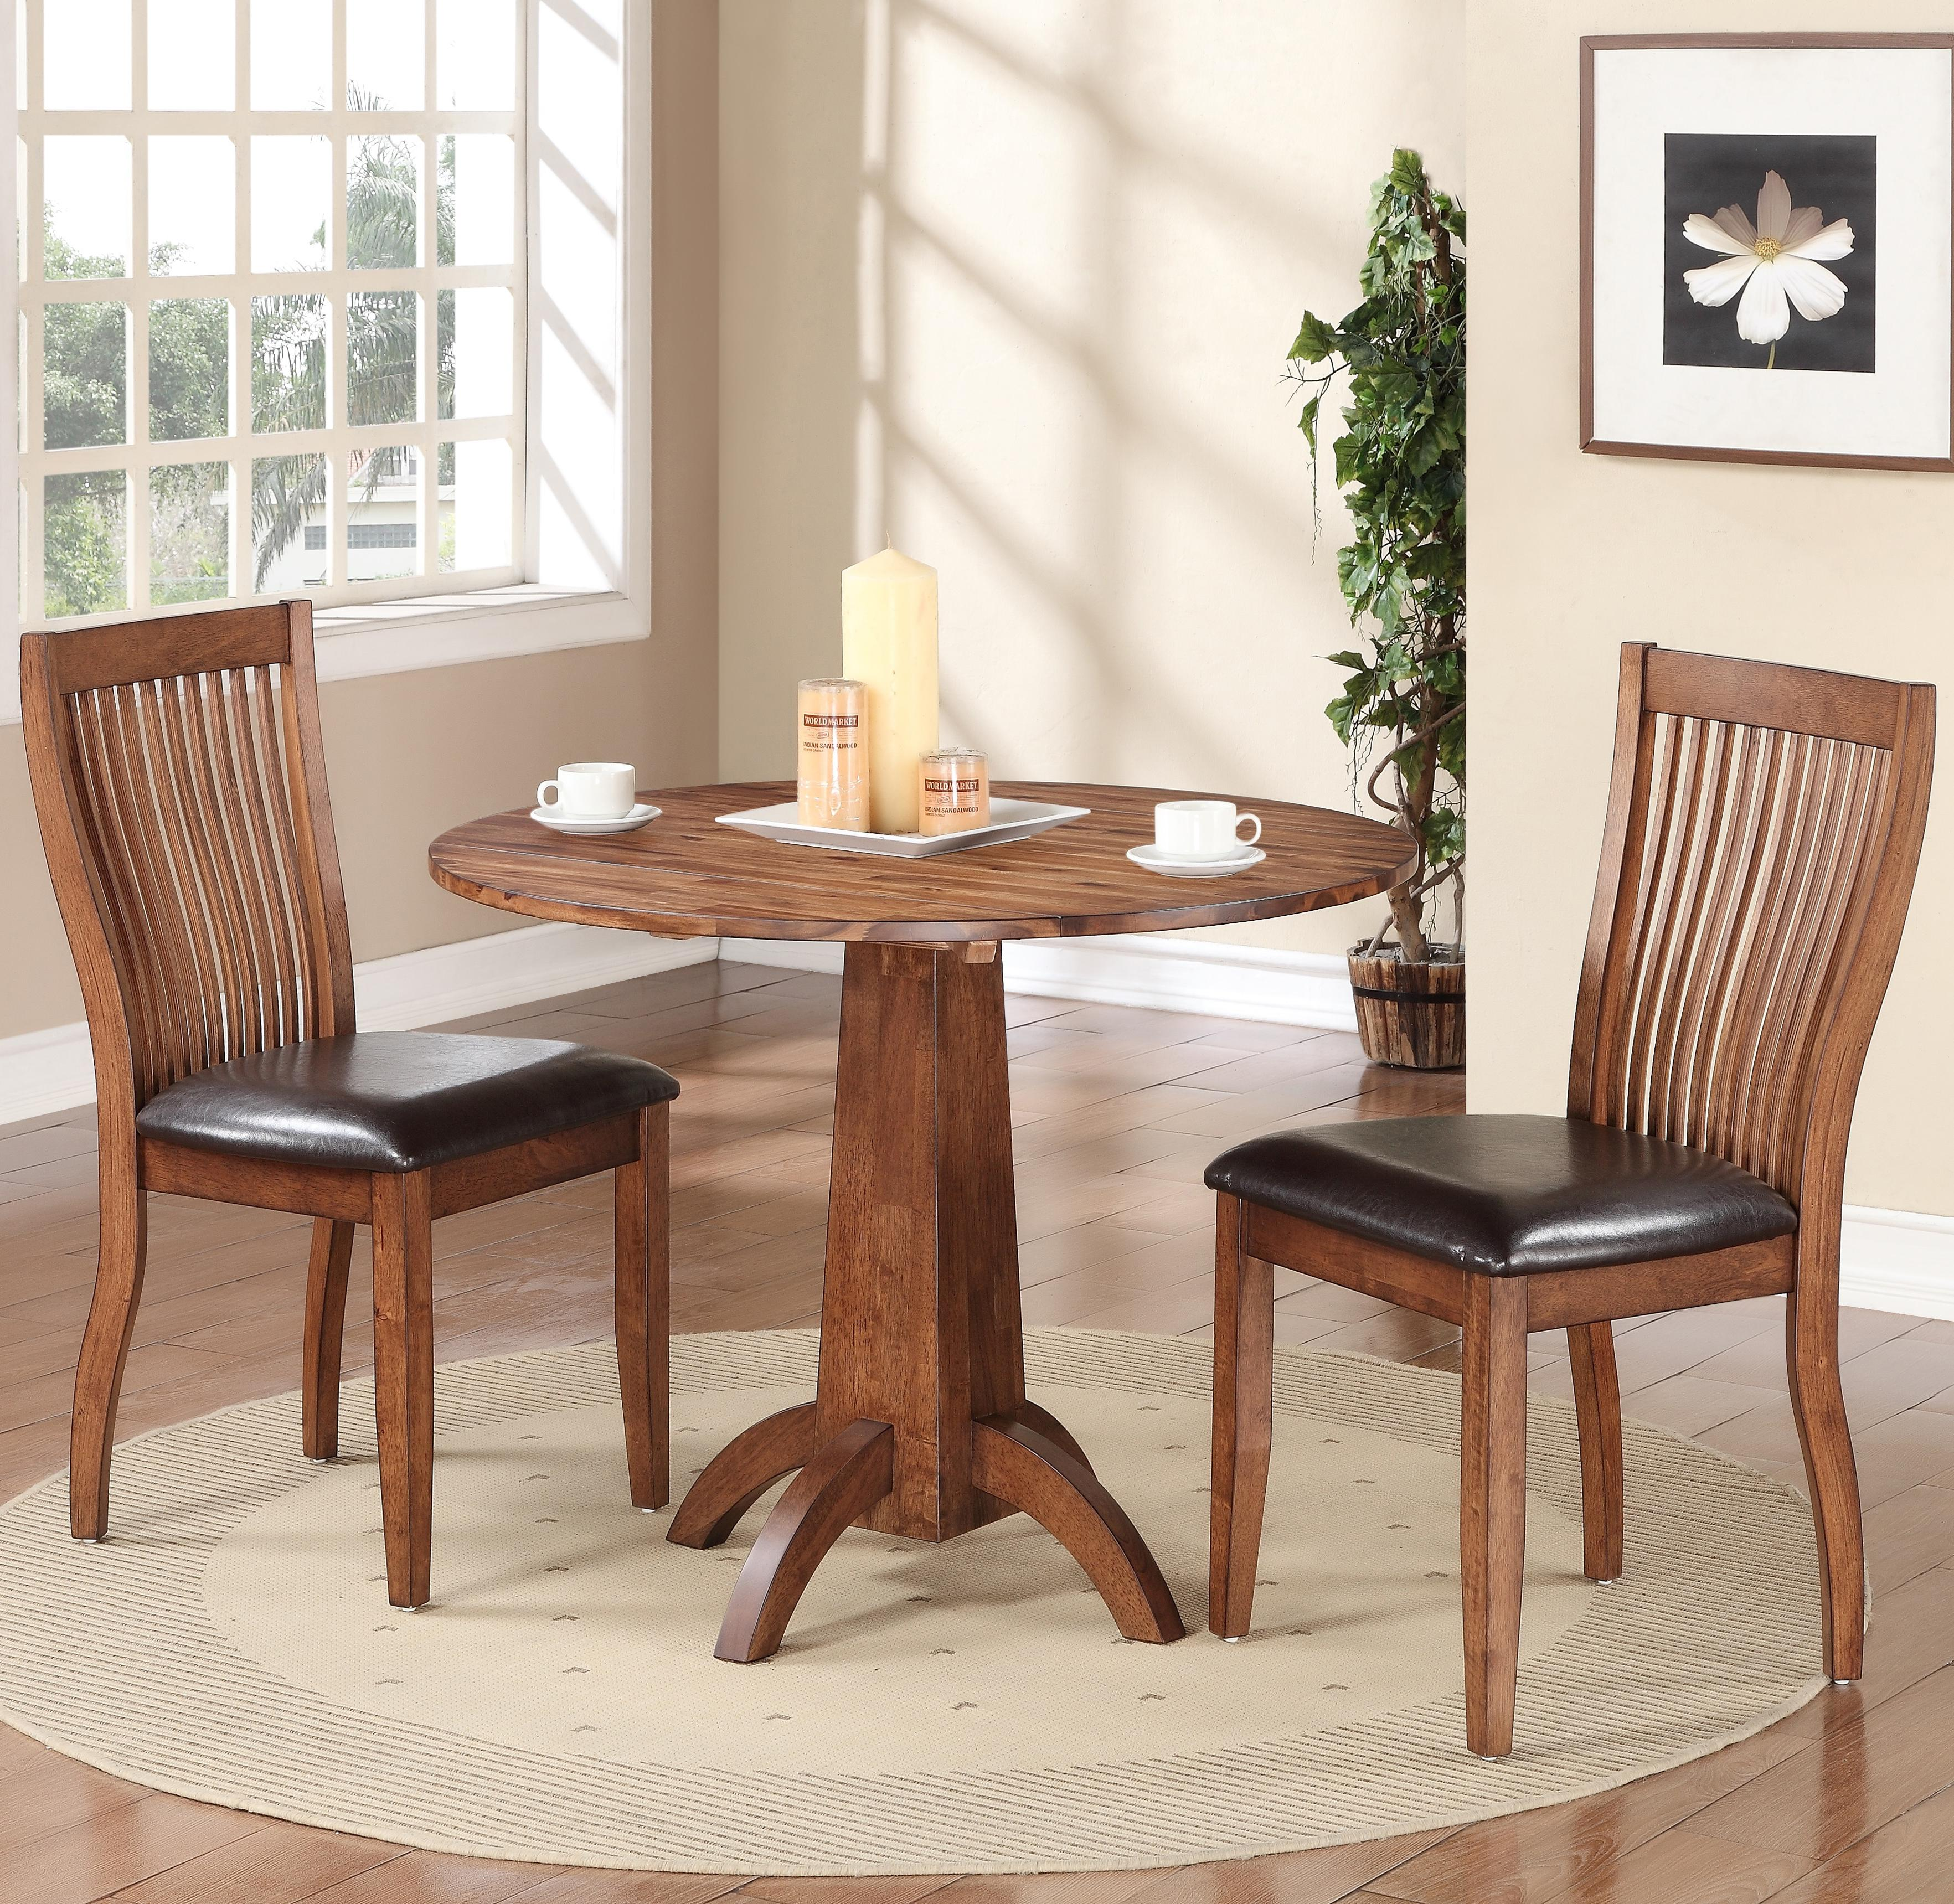 Broadway 3 Piece Dining Set by Winners Only at Simply Home by Lindy's